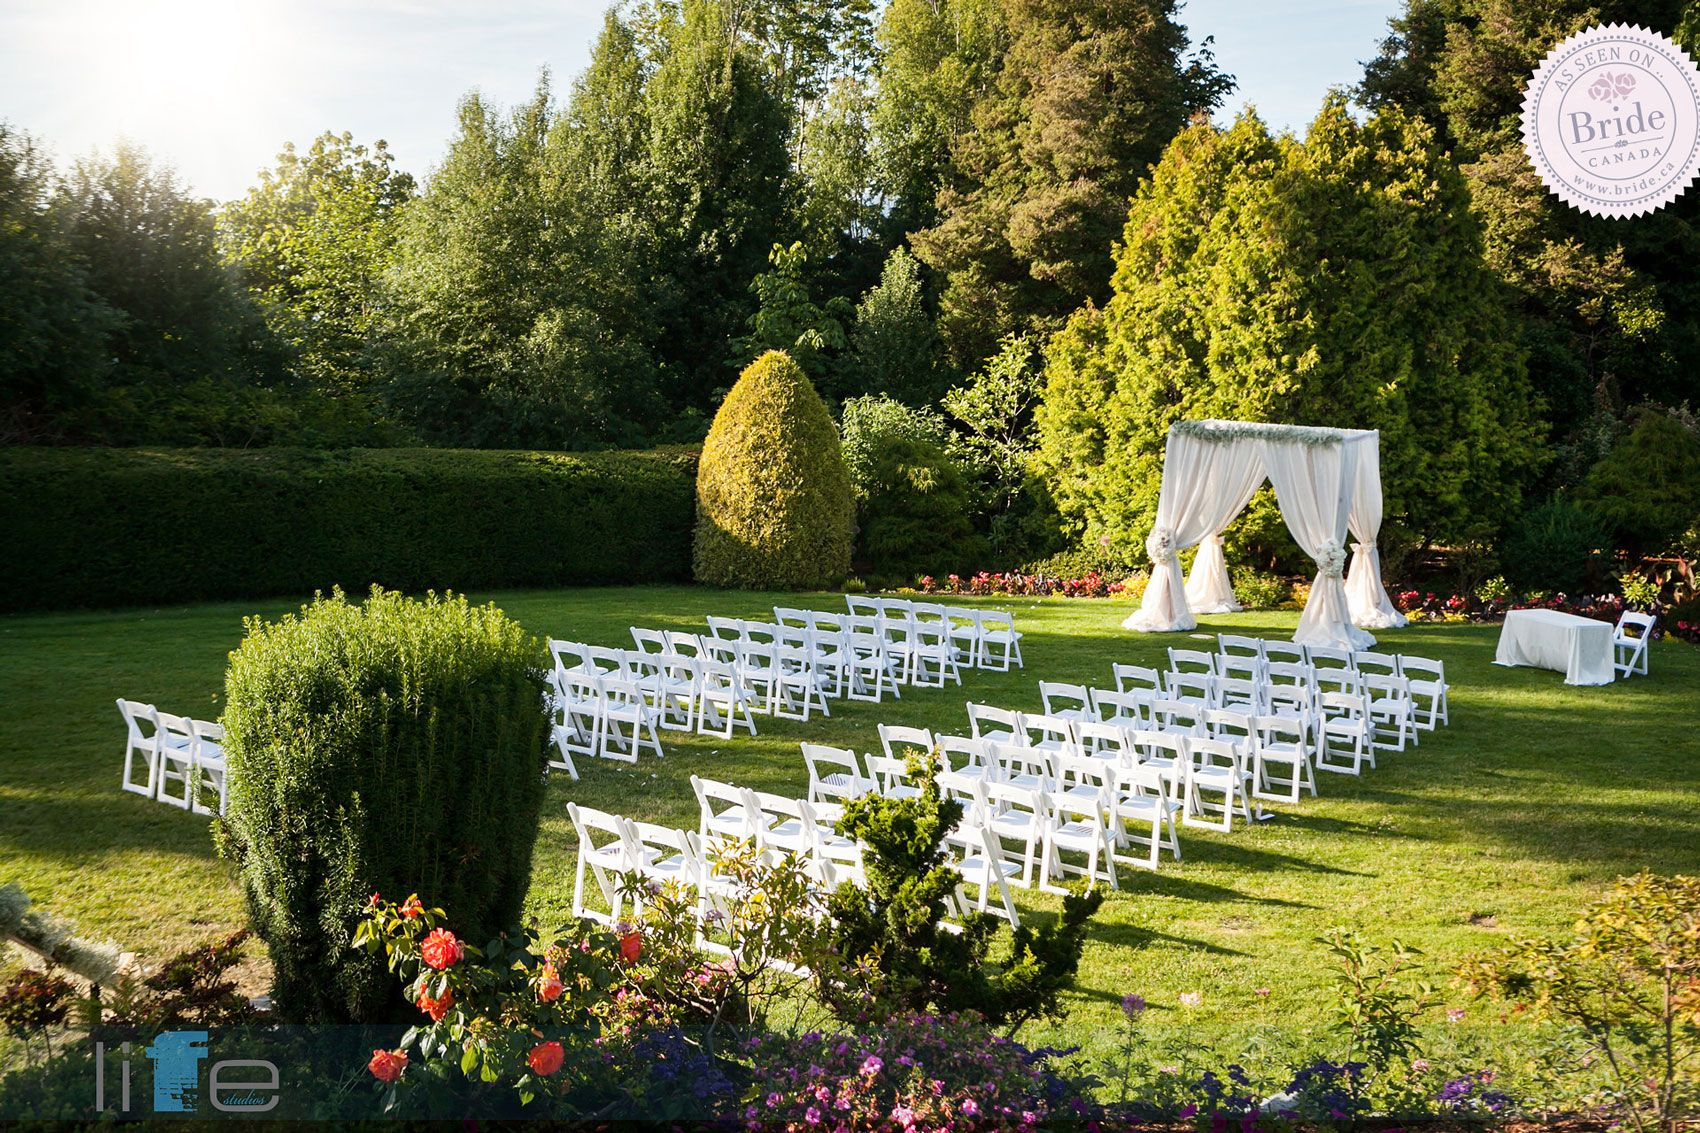 Outdoor Wedding Venues: The Beautiful Grounds Of Cecil Green Park House Offer One